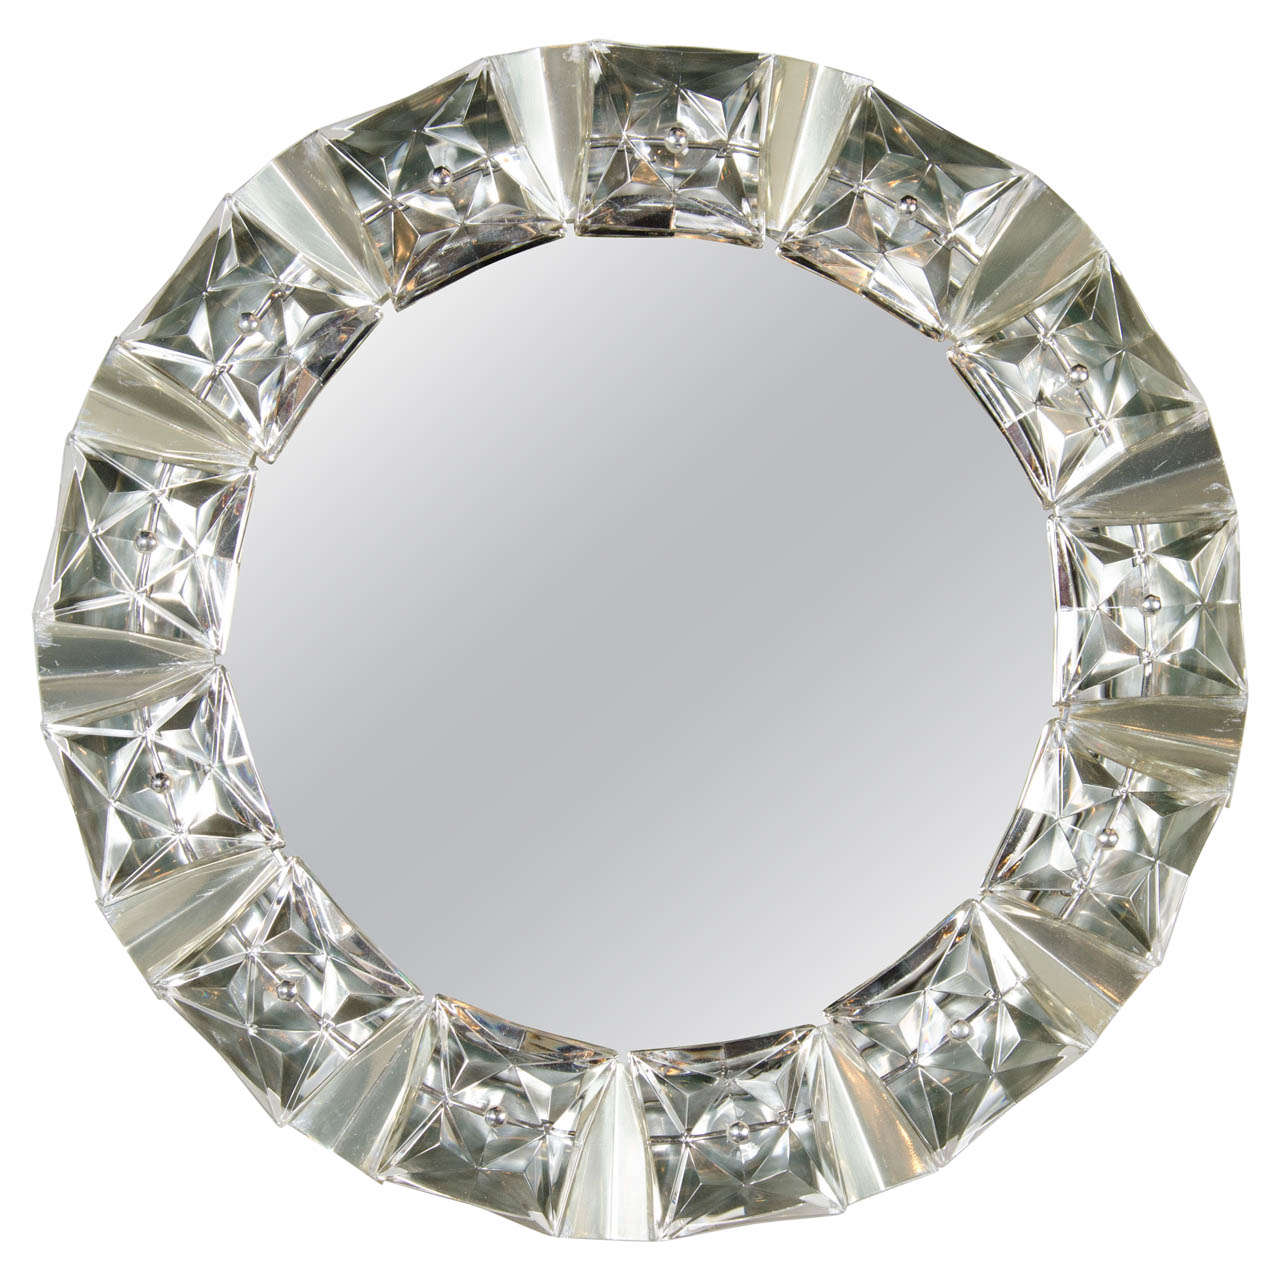 Illuminating mid century inset cut crystal mirror by kalmar at 1stdibs illuminating mid century inset cut crystal mirror by kalmar 1 amipublicfo Image collections